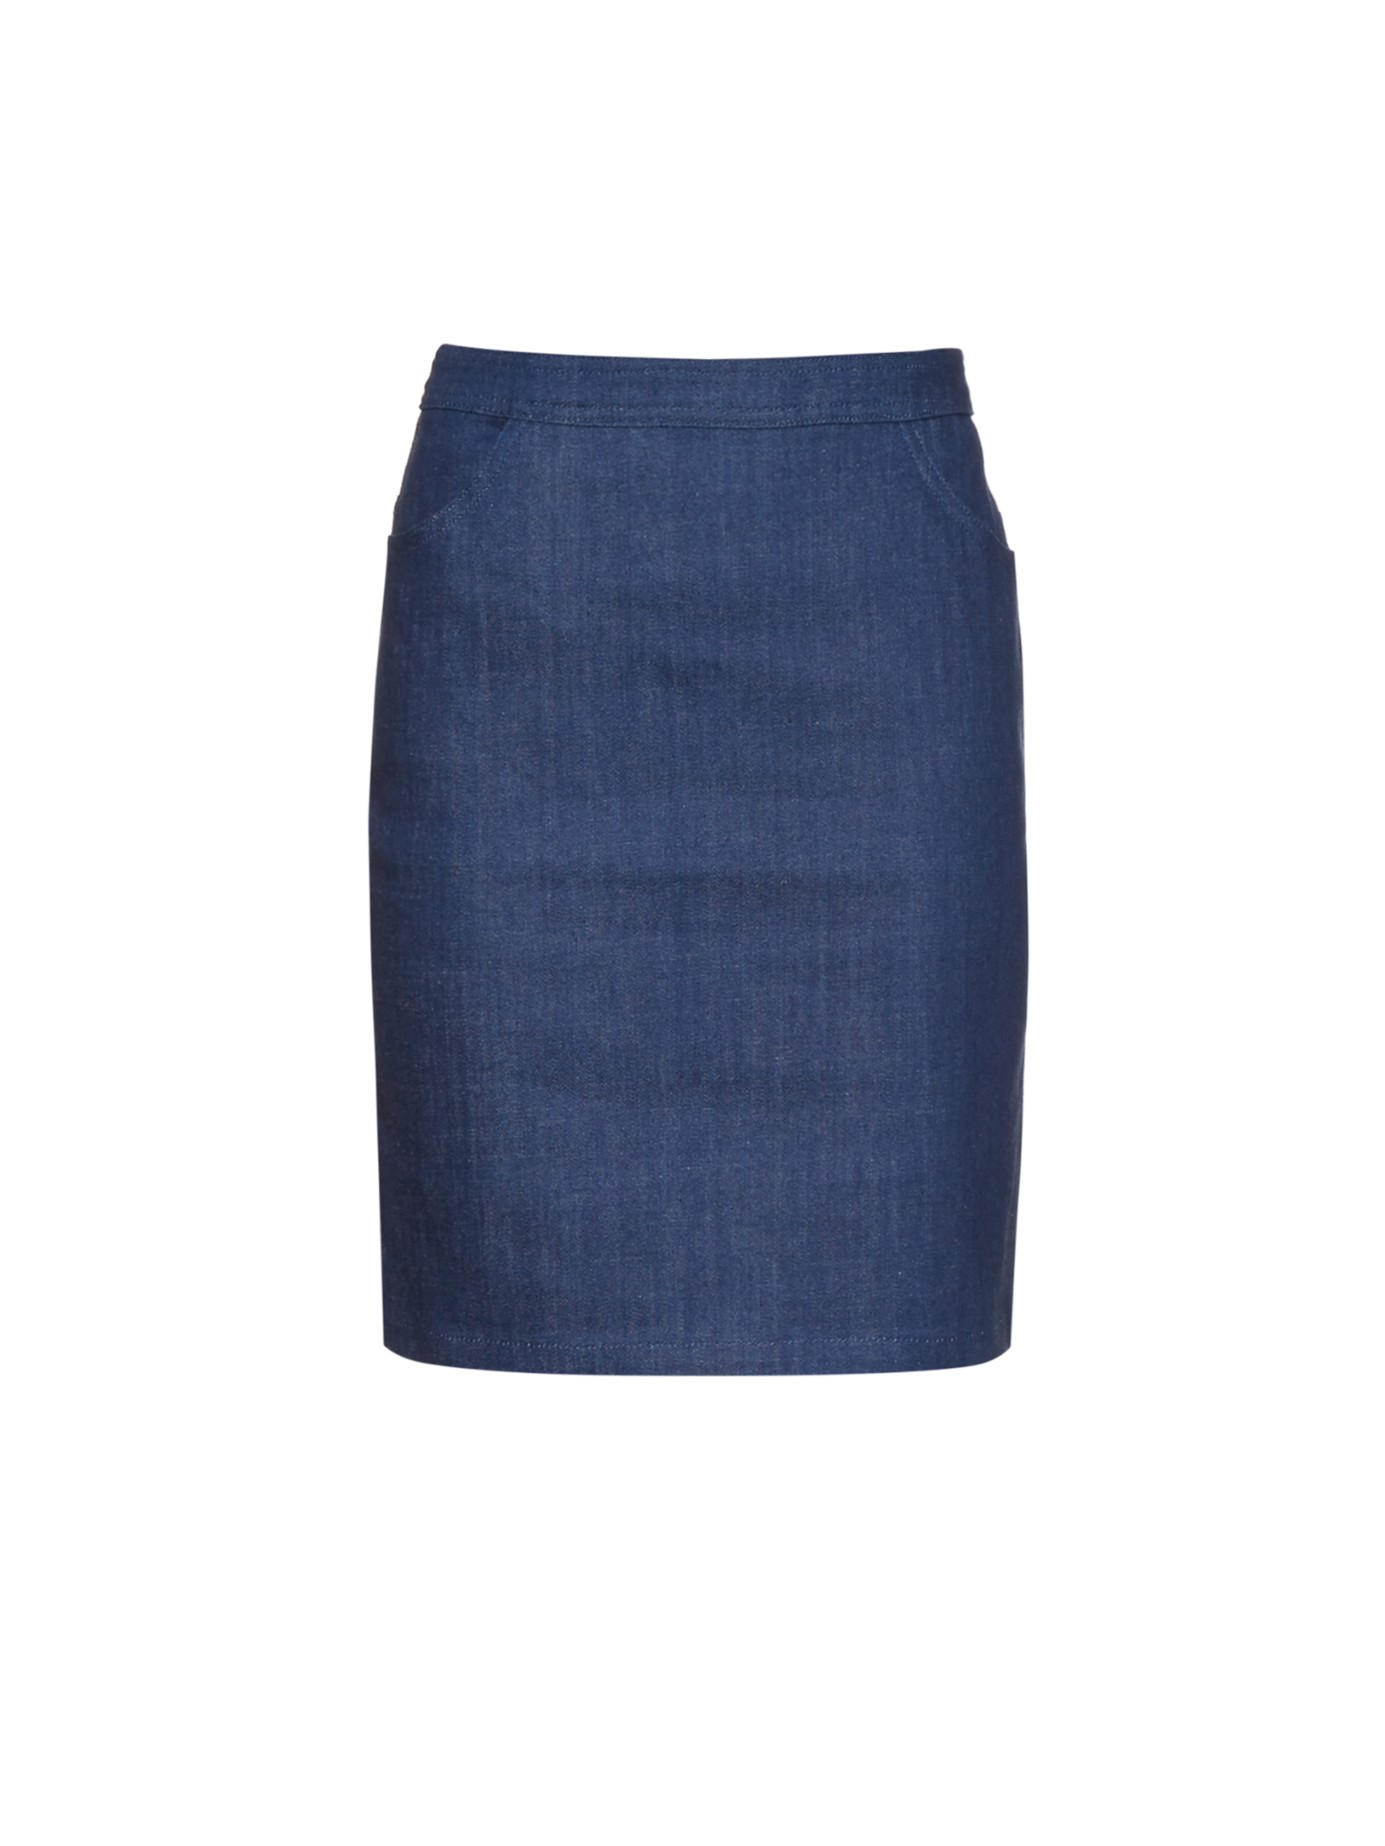 A.p.c. High-rise Stretch-denim Skirt in Blue | Lyst